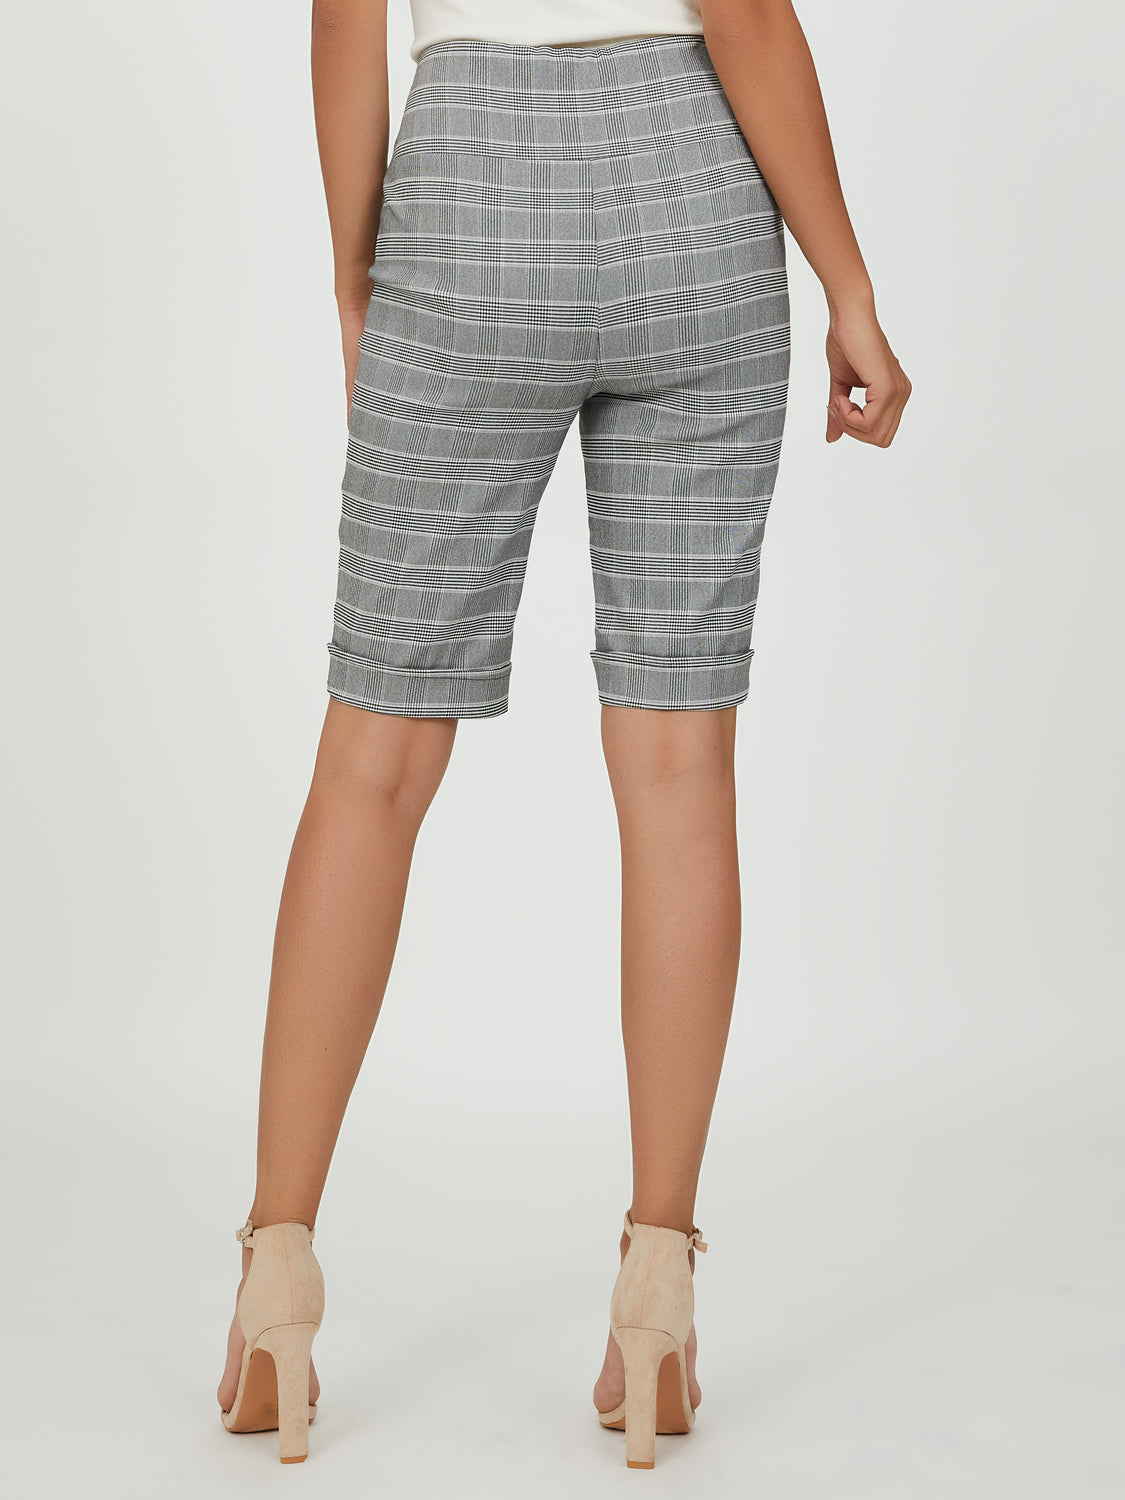 Glen Plaid Cuffed Knee Length Bermuda Shorts